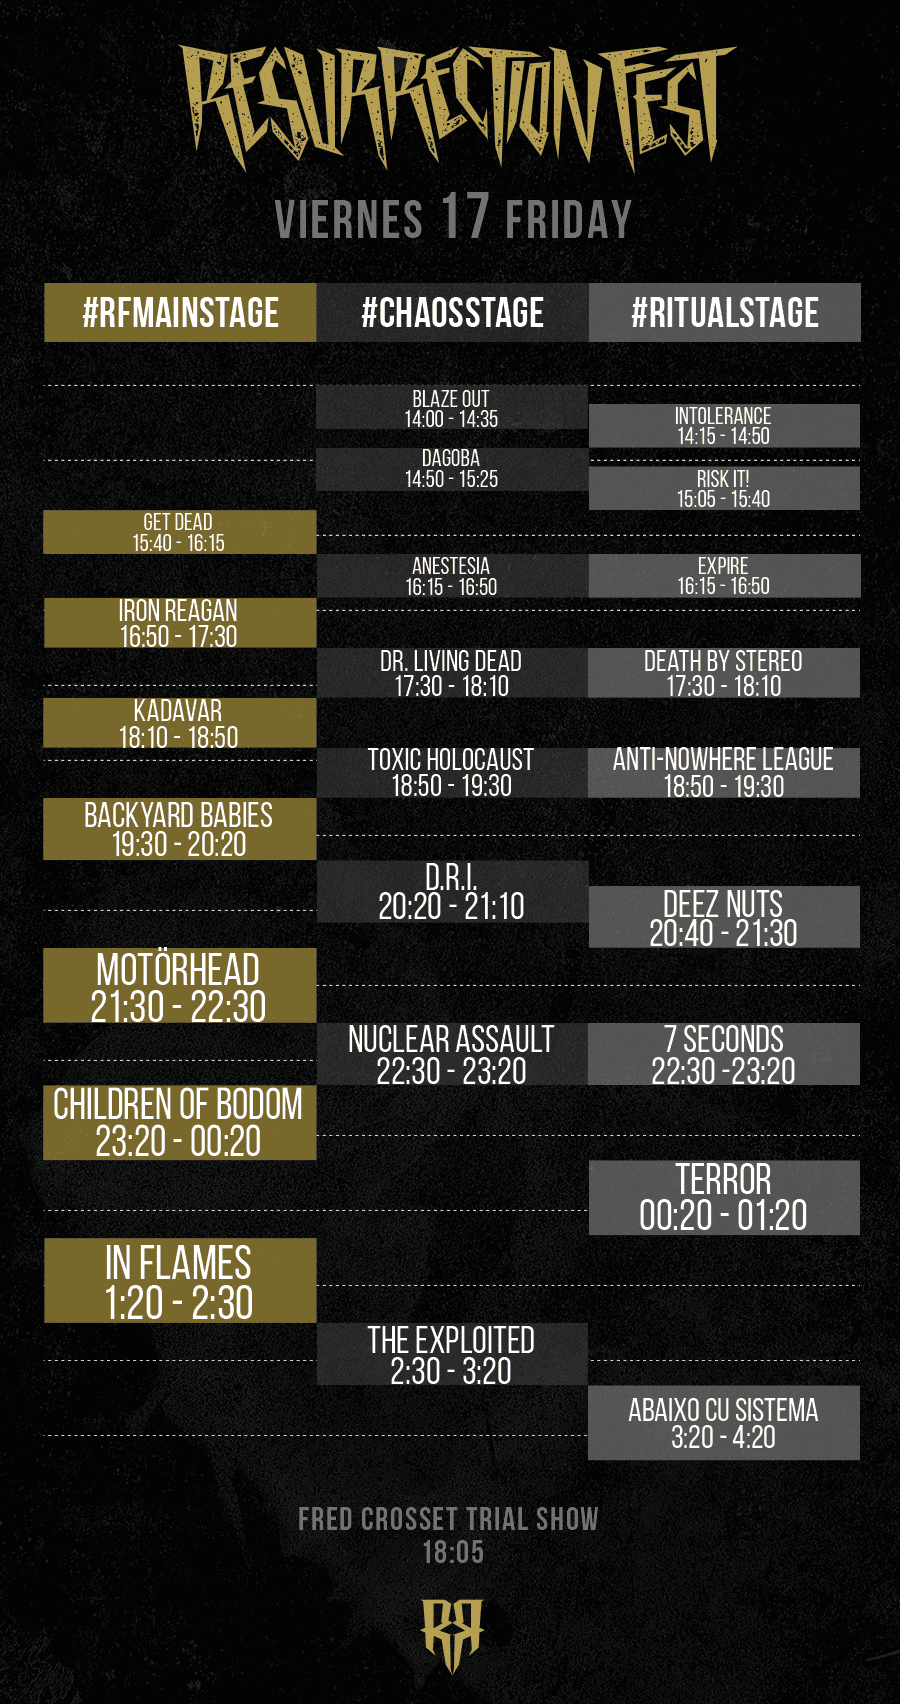 Resurrection Fest 2015 - Running Order - 17